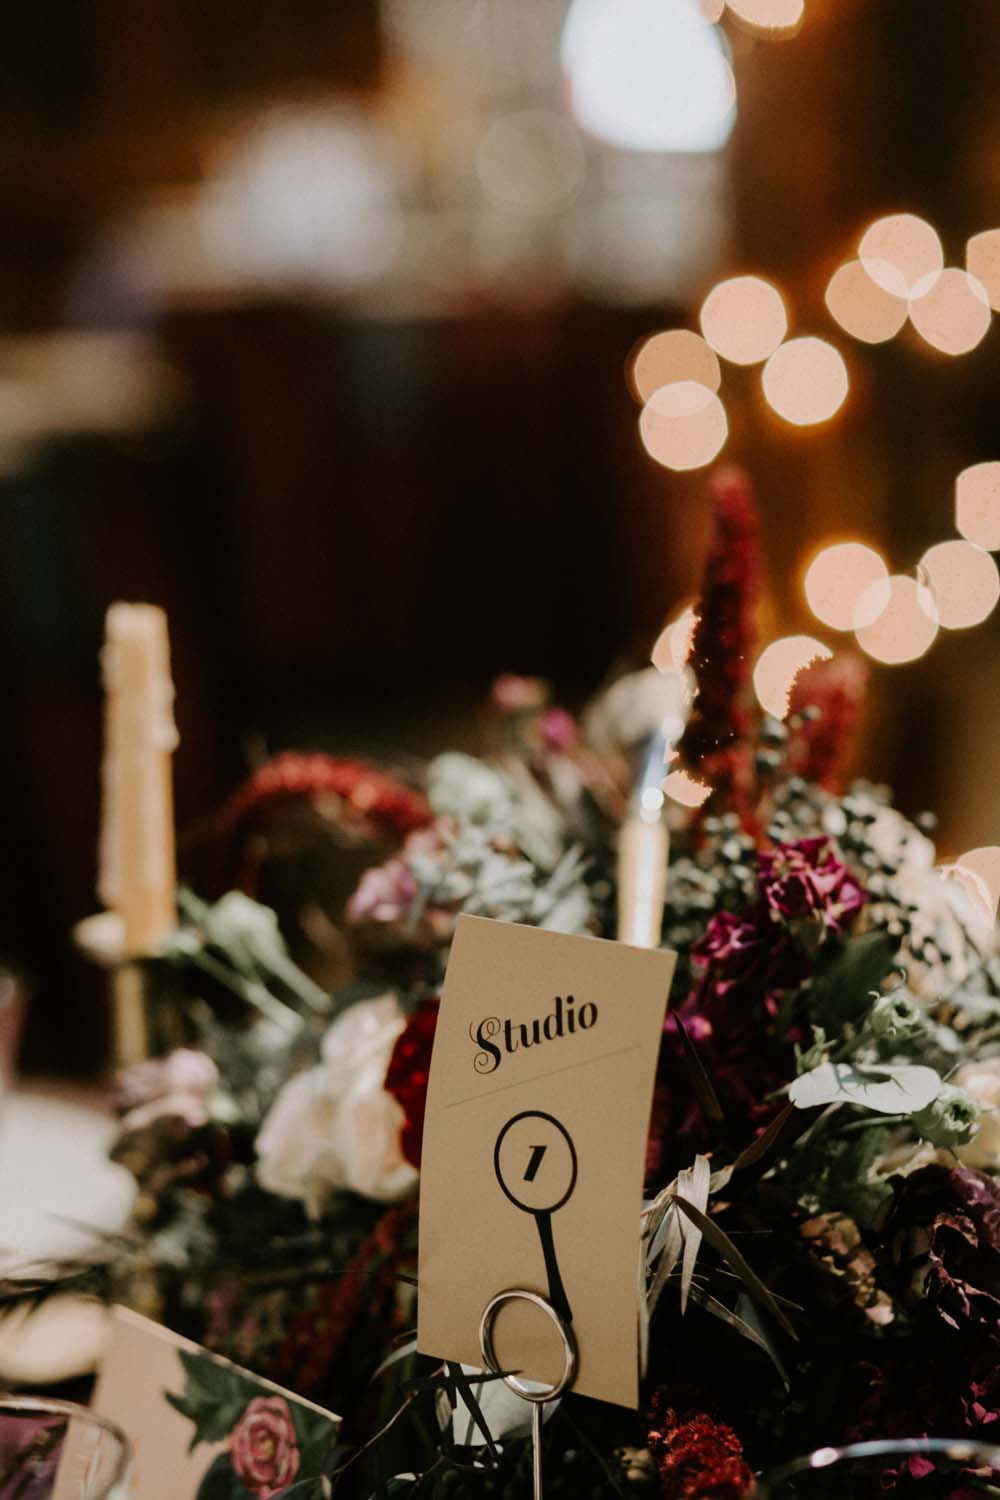 darkly-romantic-wedding-flowers-candis-floral-creations_15